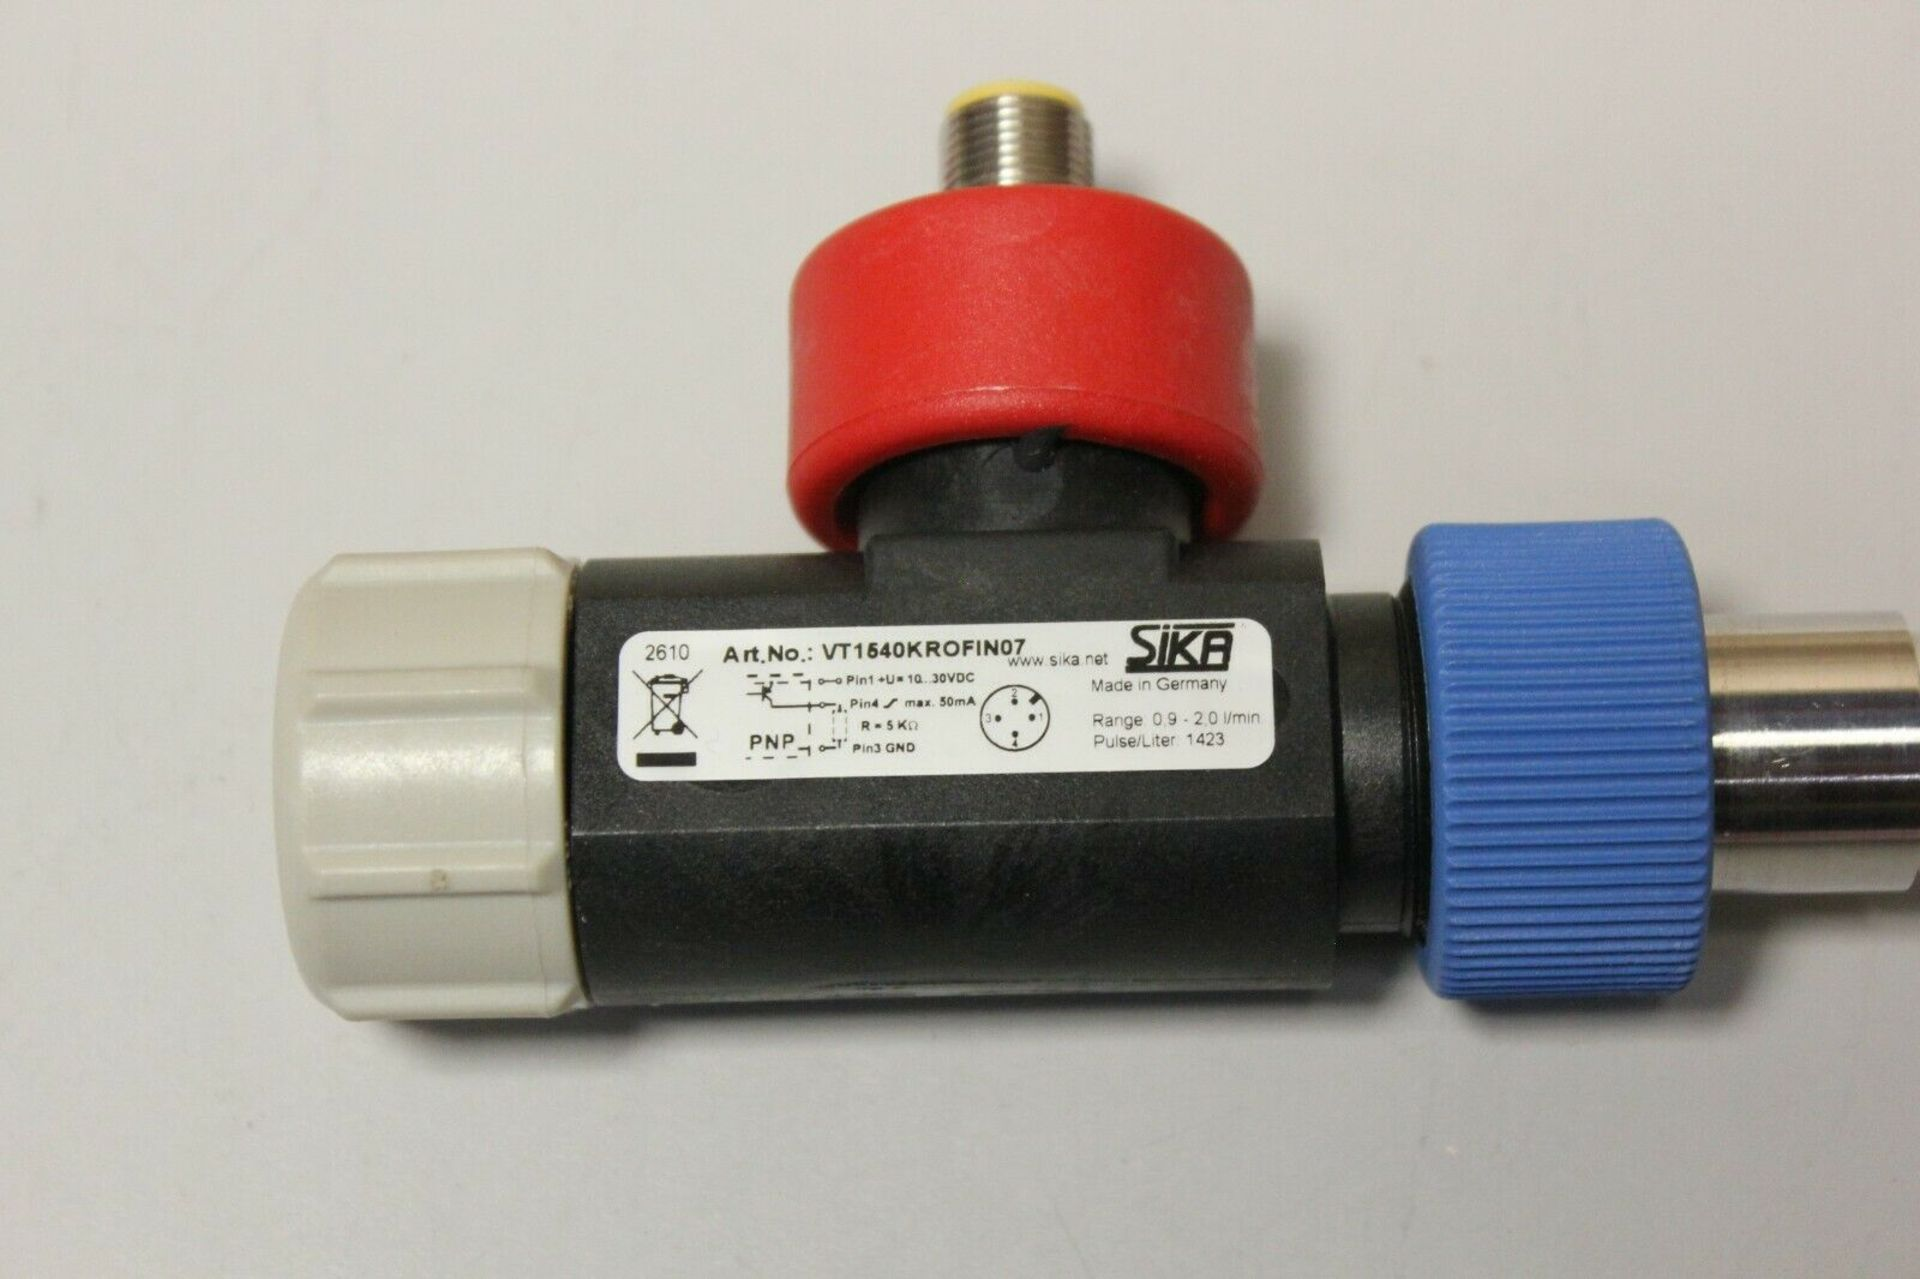 SIKA TURBINE FLOW SENSOR WITH CABLE - Image 10 of 10